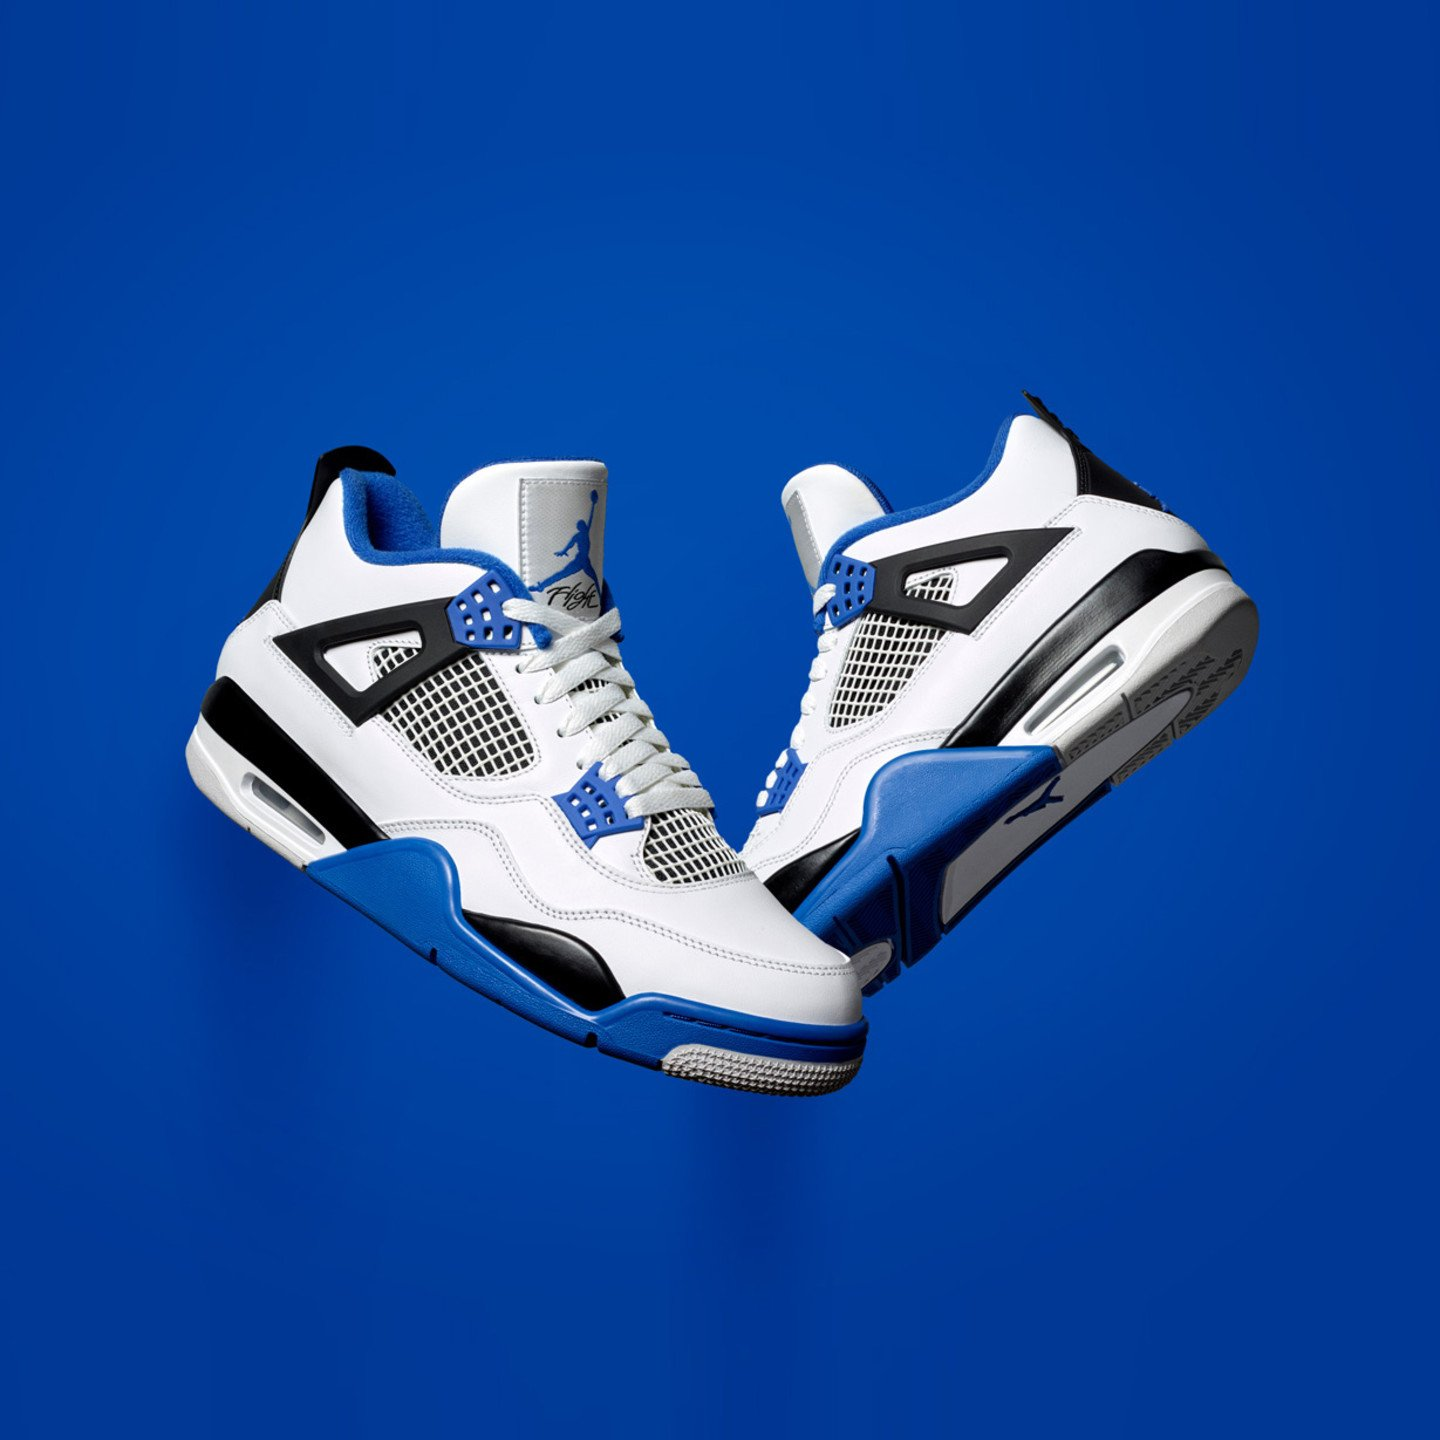 Jordan Air Jordan 4 Retro 'Motorsport' White / Game Royal / Black 308497-117-41